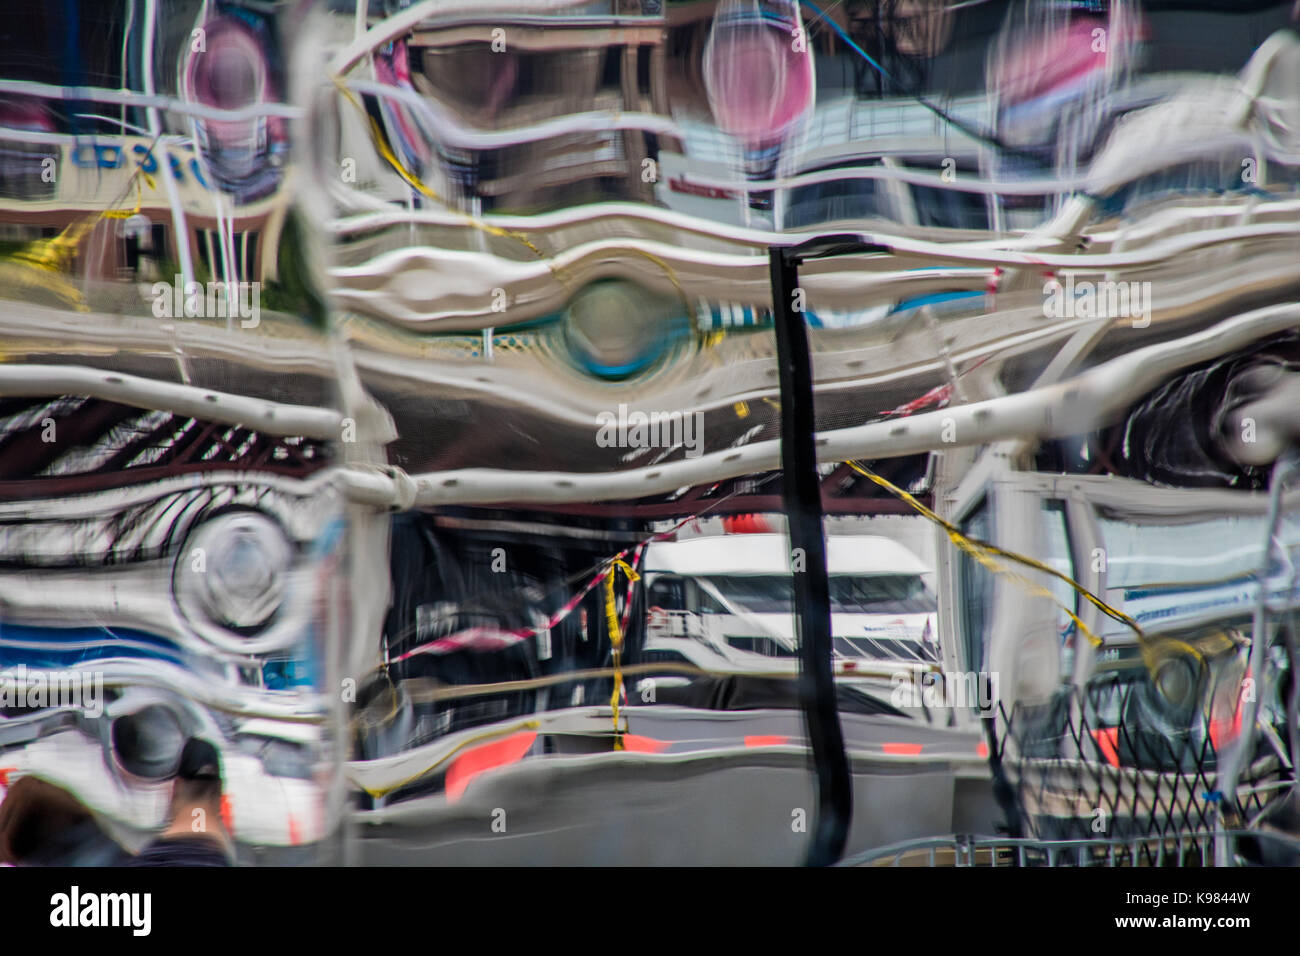 Abstract image distorted by a warped mirror - Stock Image